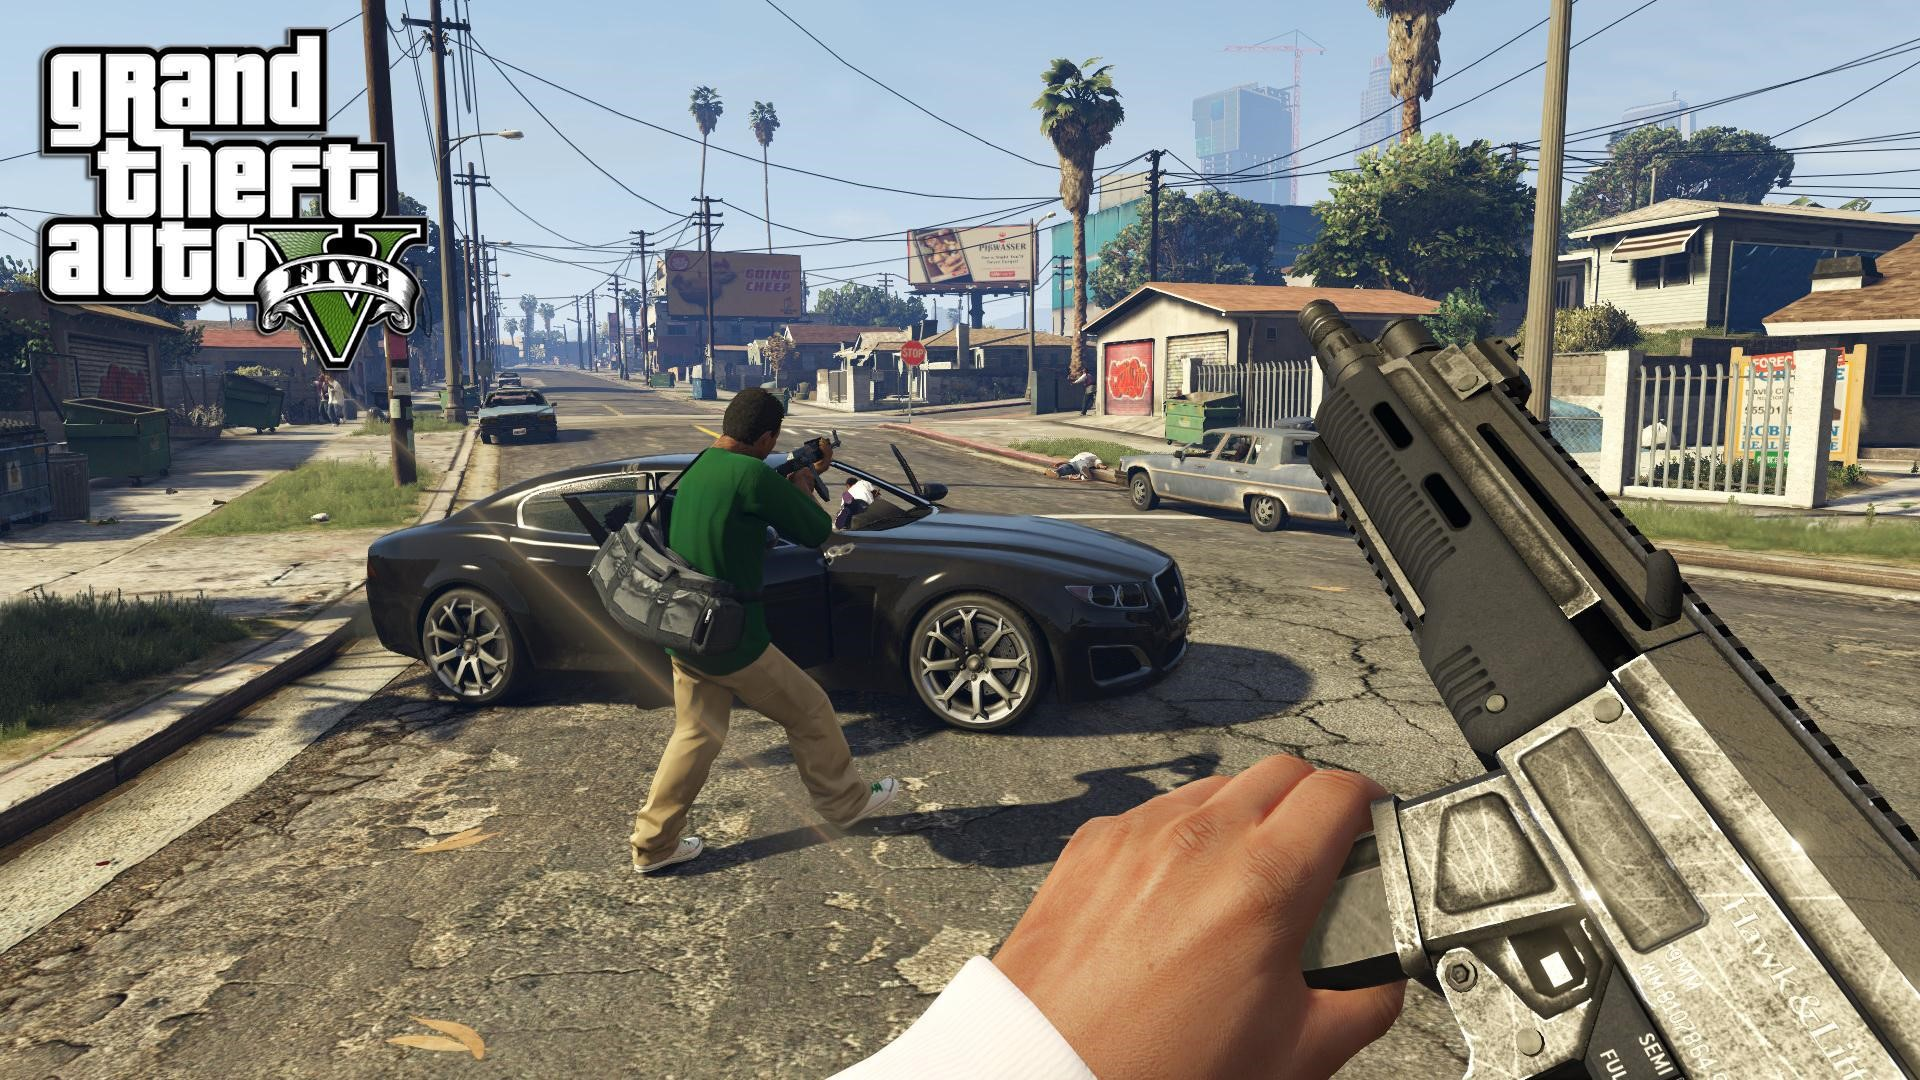 Grand Theft Auto V Wallpapers for PC